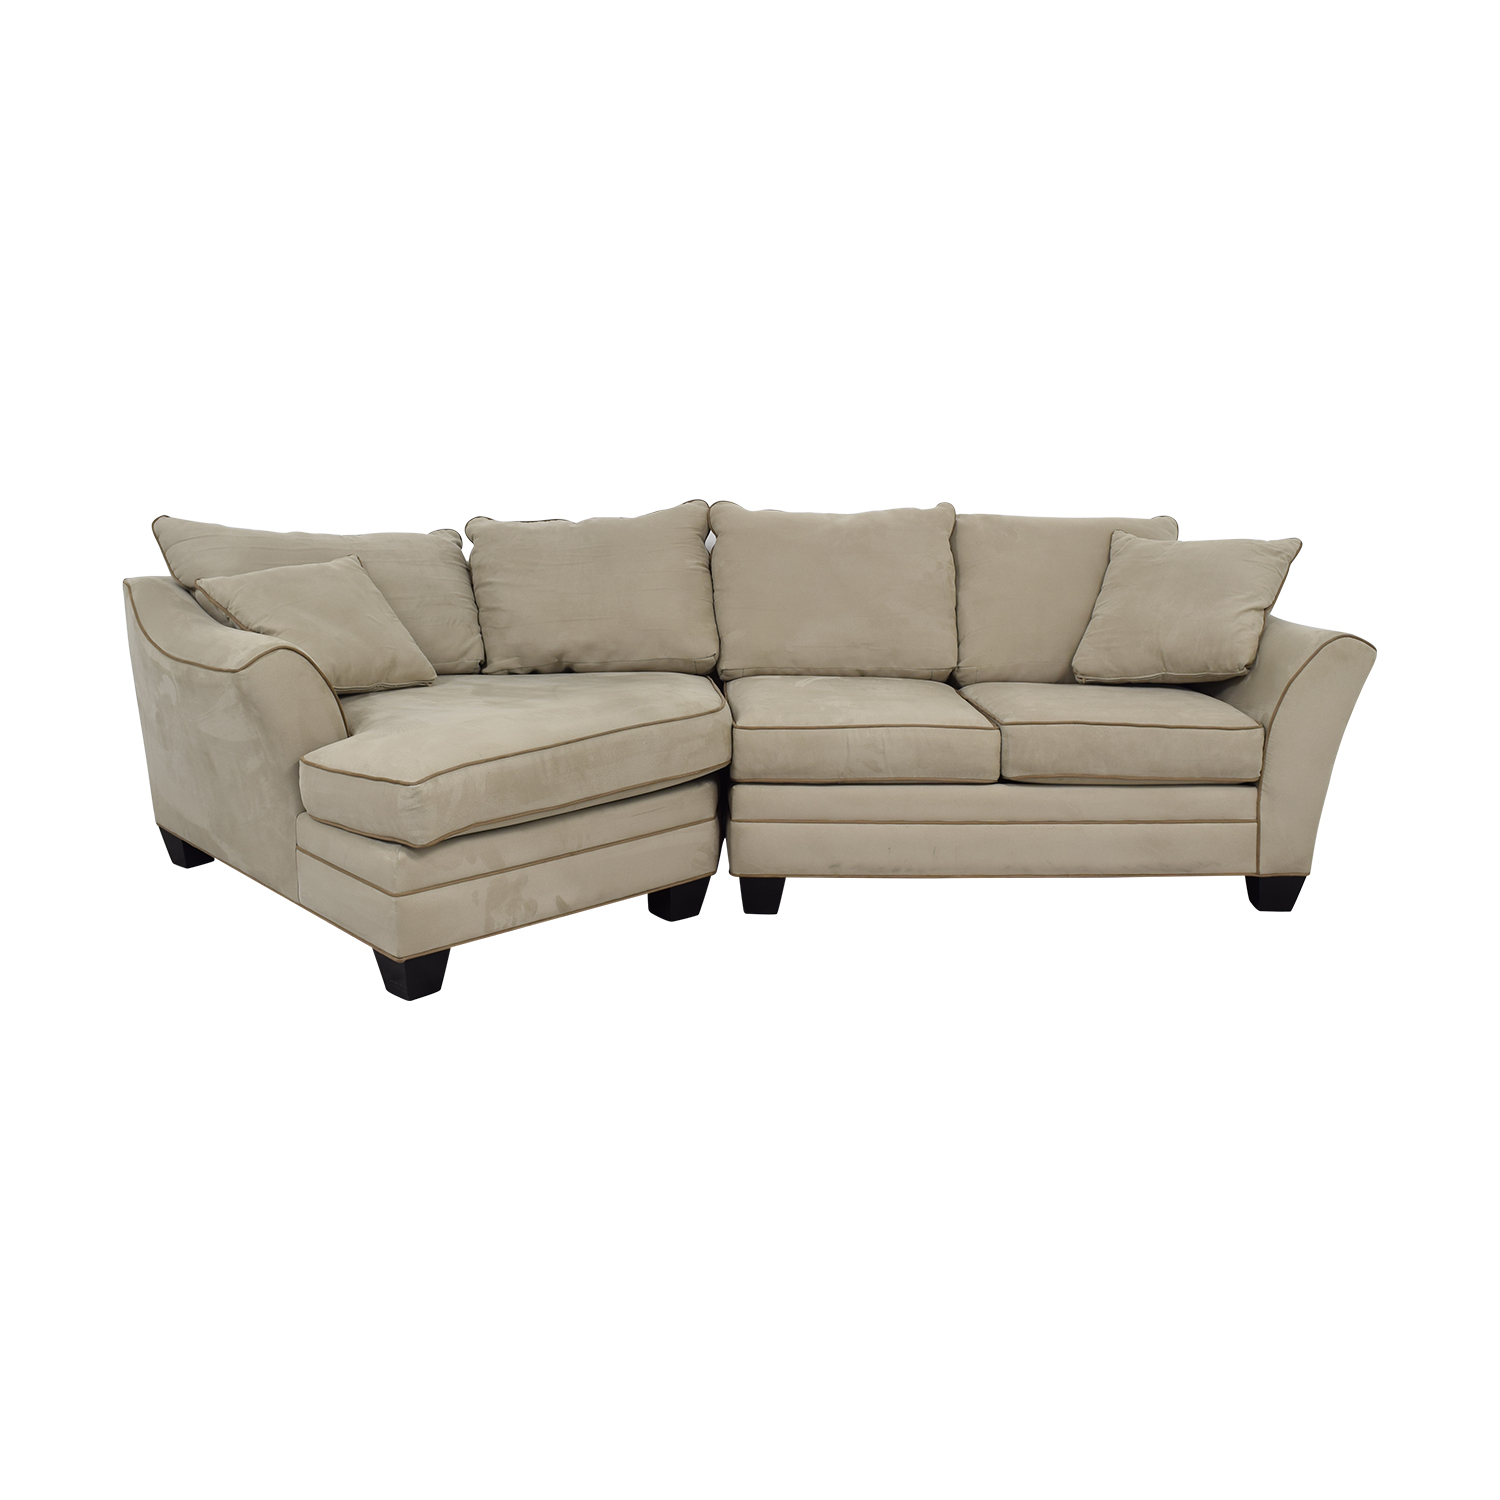 buy Raymour & Flanigan Foresthill Microfiber Beige Sectional with Angled Chaise Raymour & Flanigan